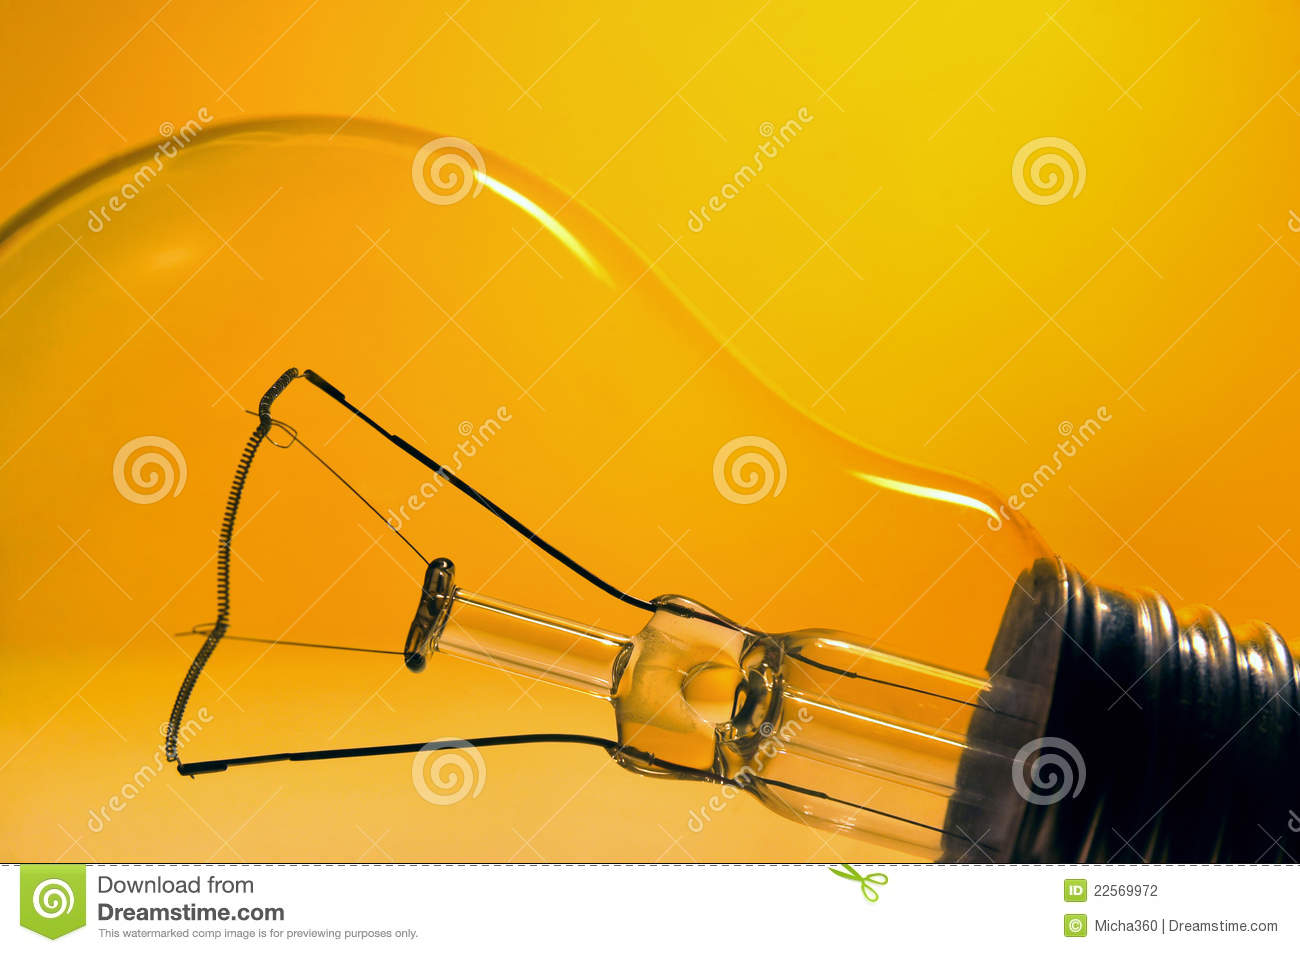 Off Peak Electricity Stock Photography Image 22569972